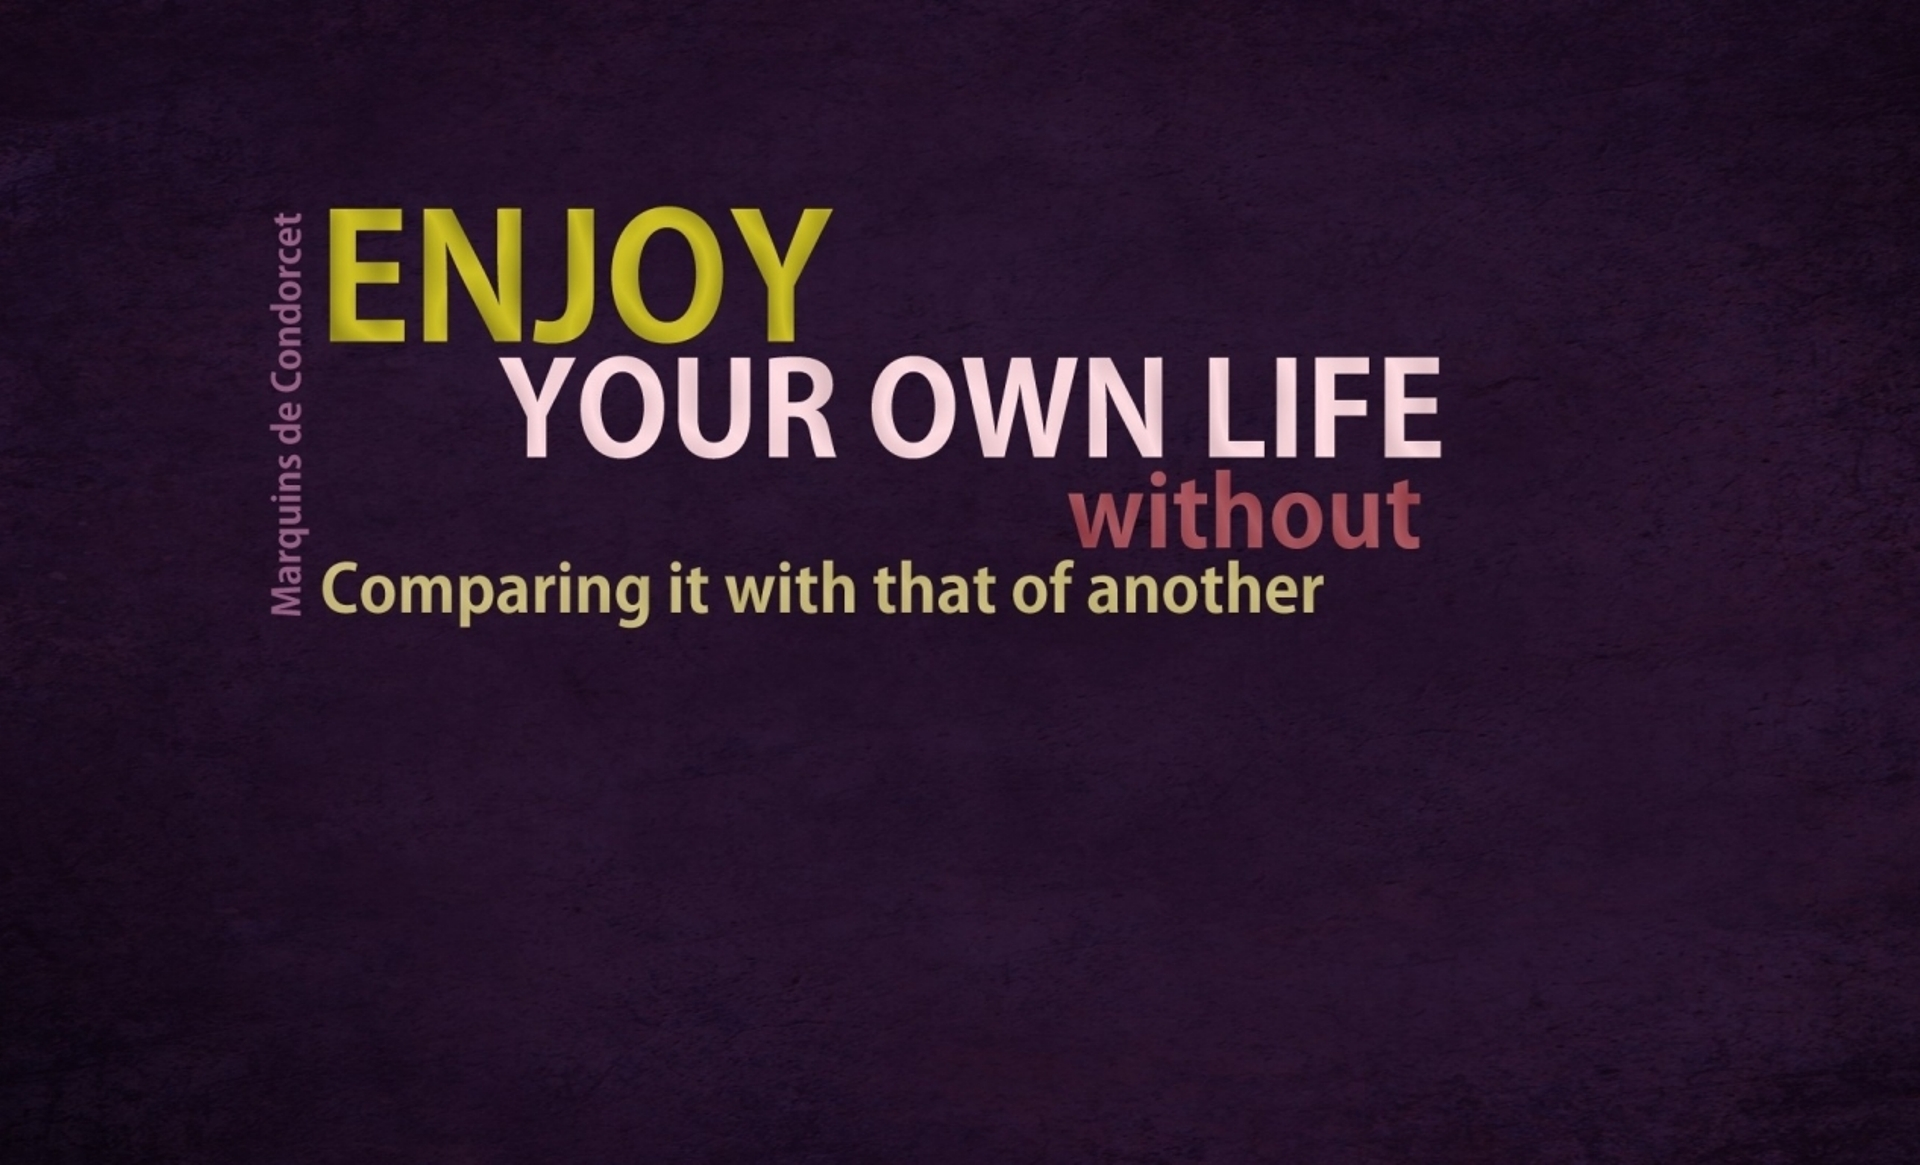 enjoy your life quotes desktop wallpaper free for desktop download